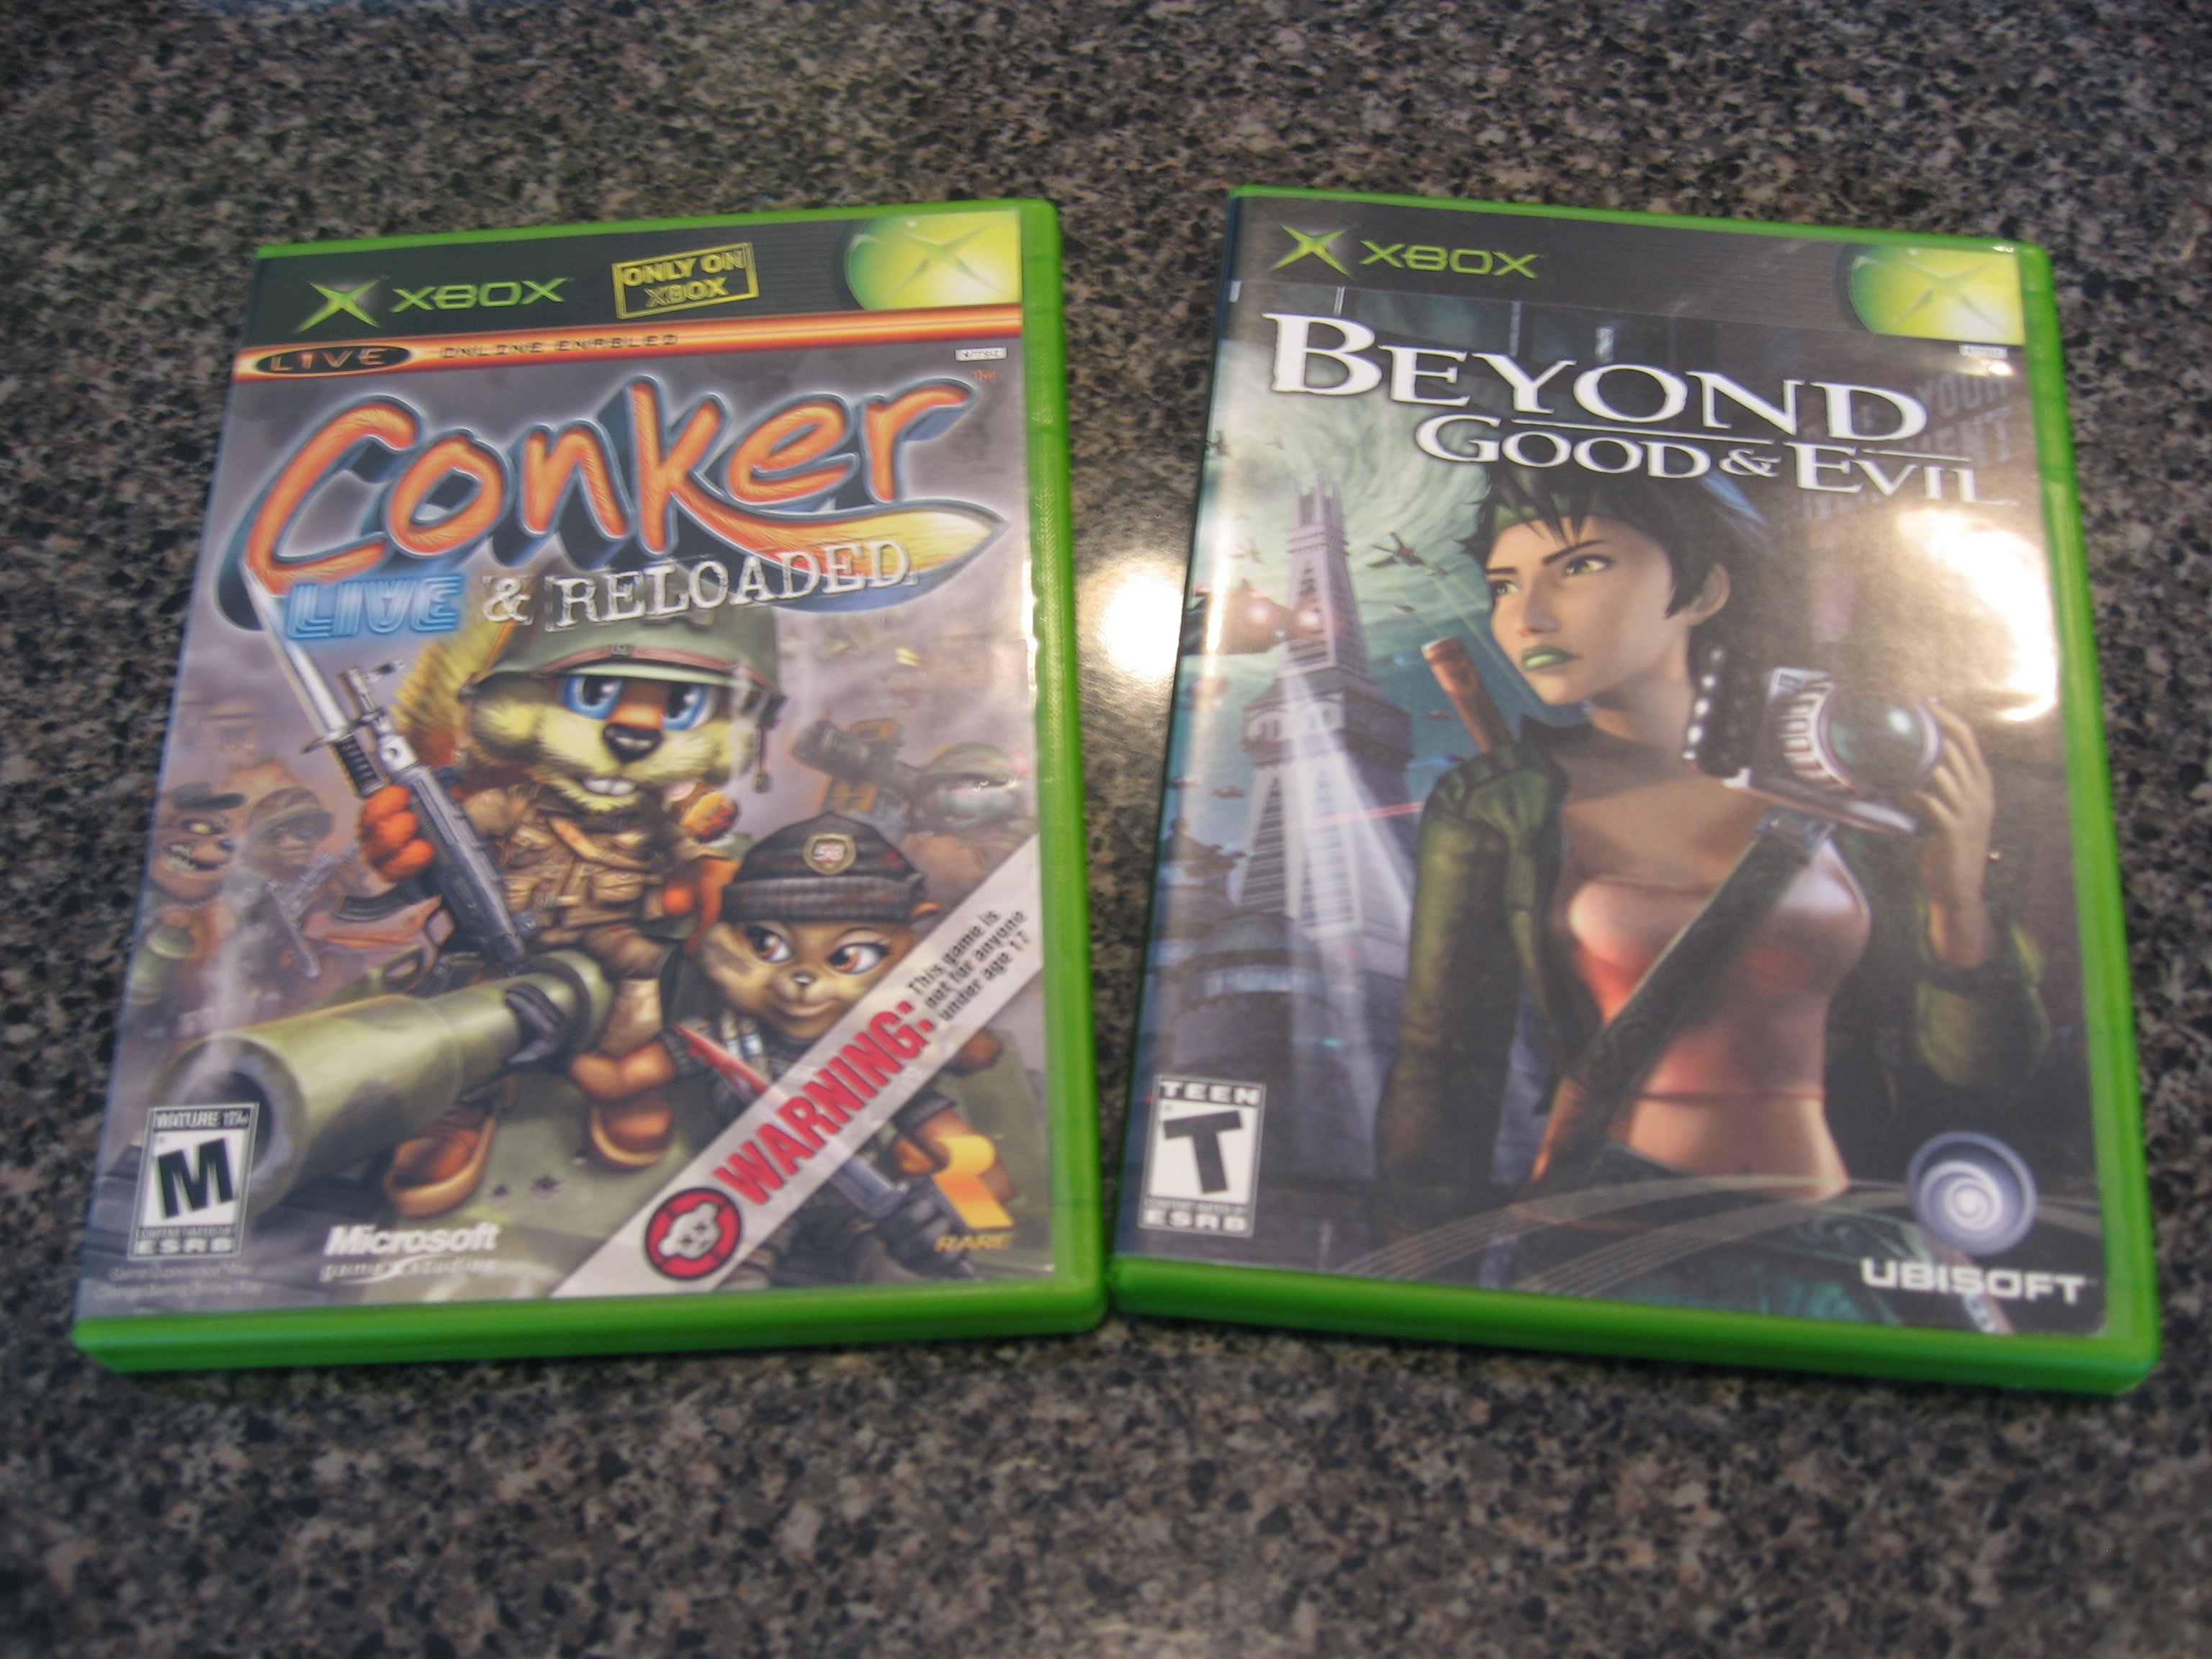 Conker Live & Reloaded and Beyond Good & Evil